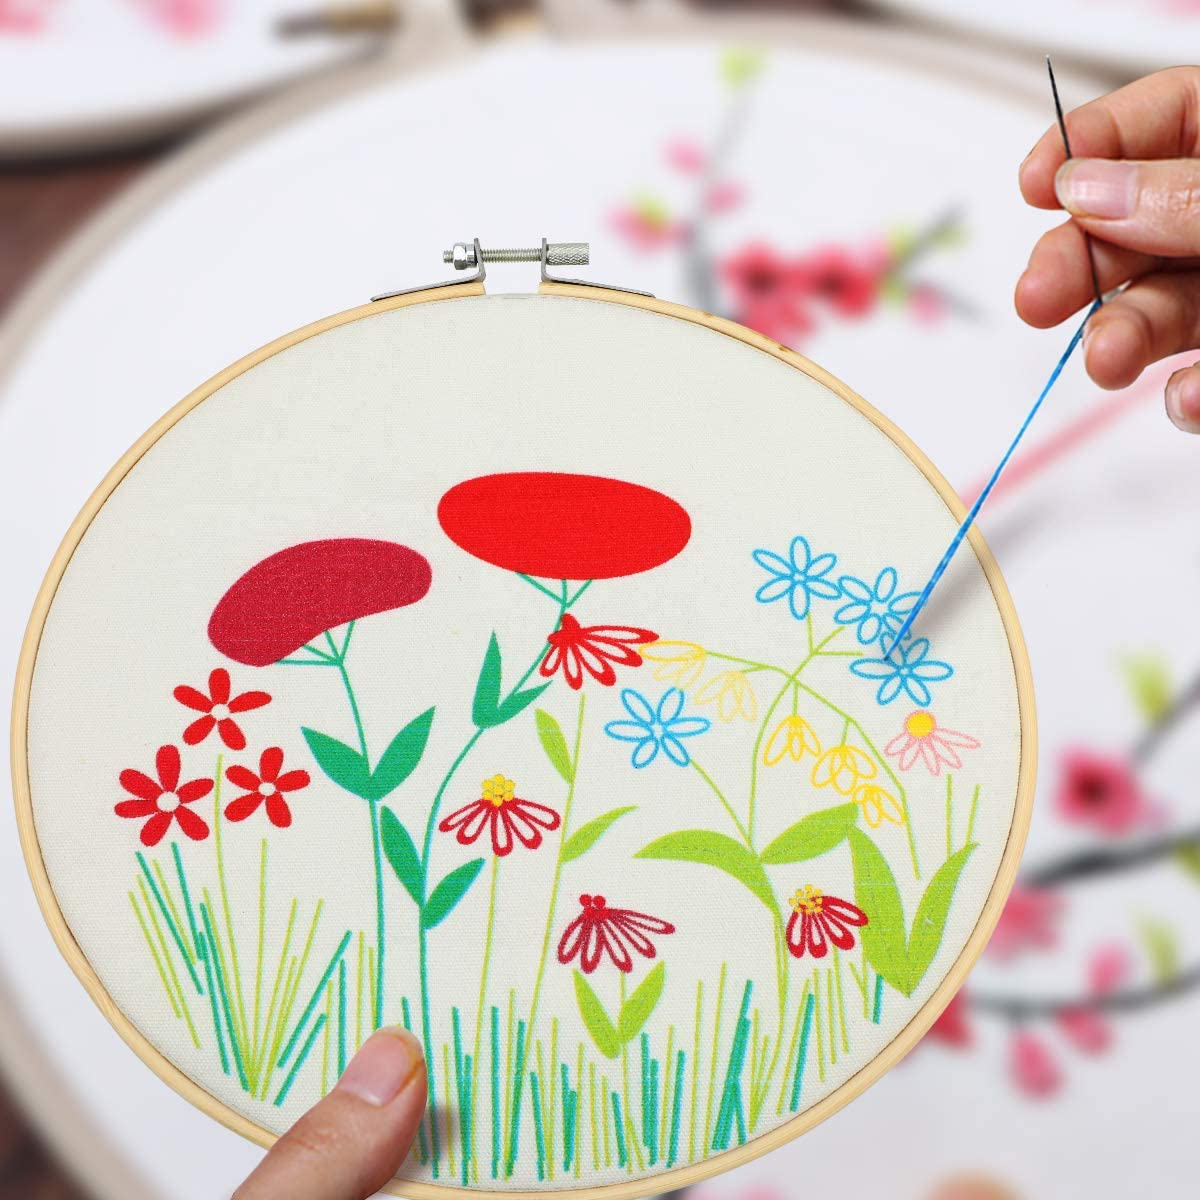 MWOOT Embroidery Starter Kit with Floral Pattern,DIY Cross Stitch Stamped Embroidery Craft Handmade Art Sewing Kit for Adults Beginner Stitch Starter 8 Inch,Style A